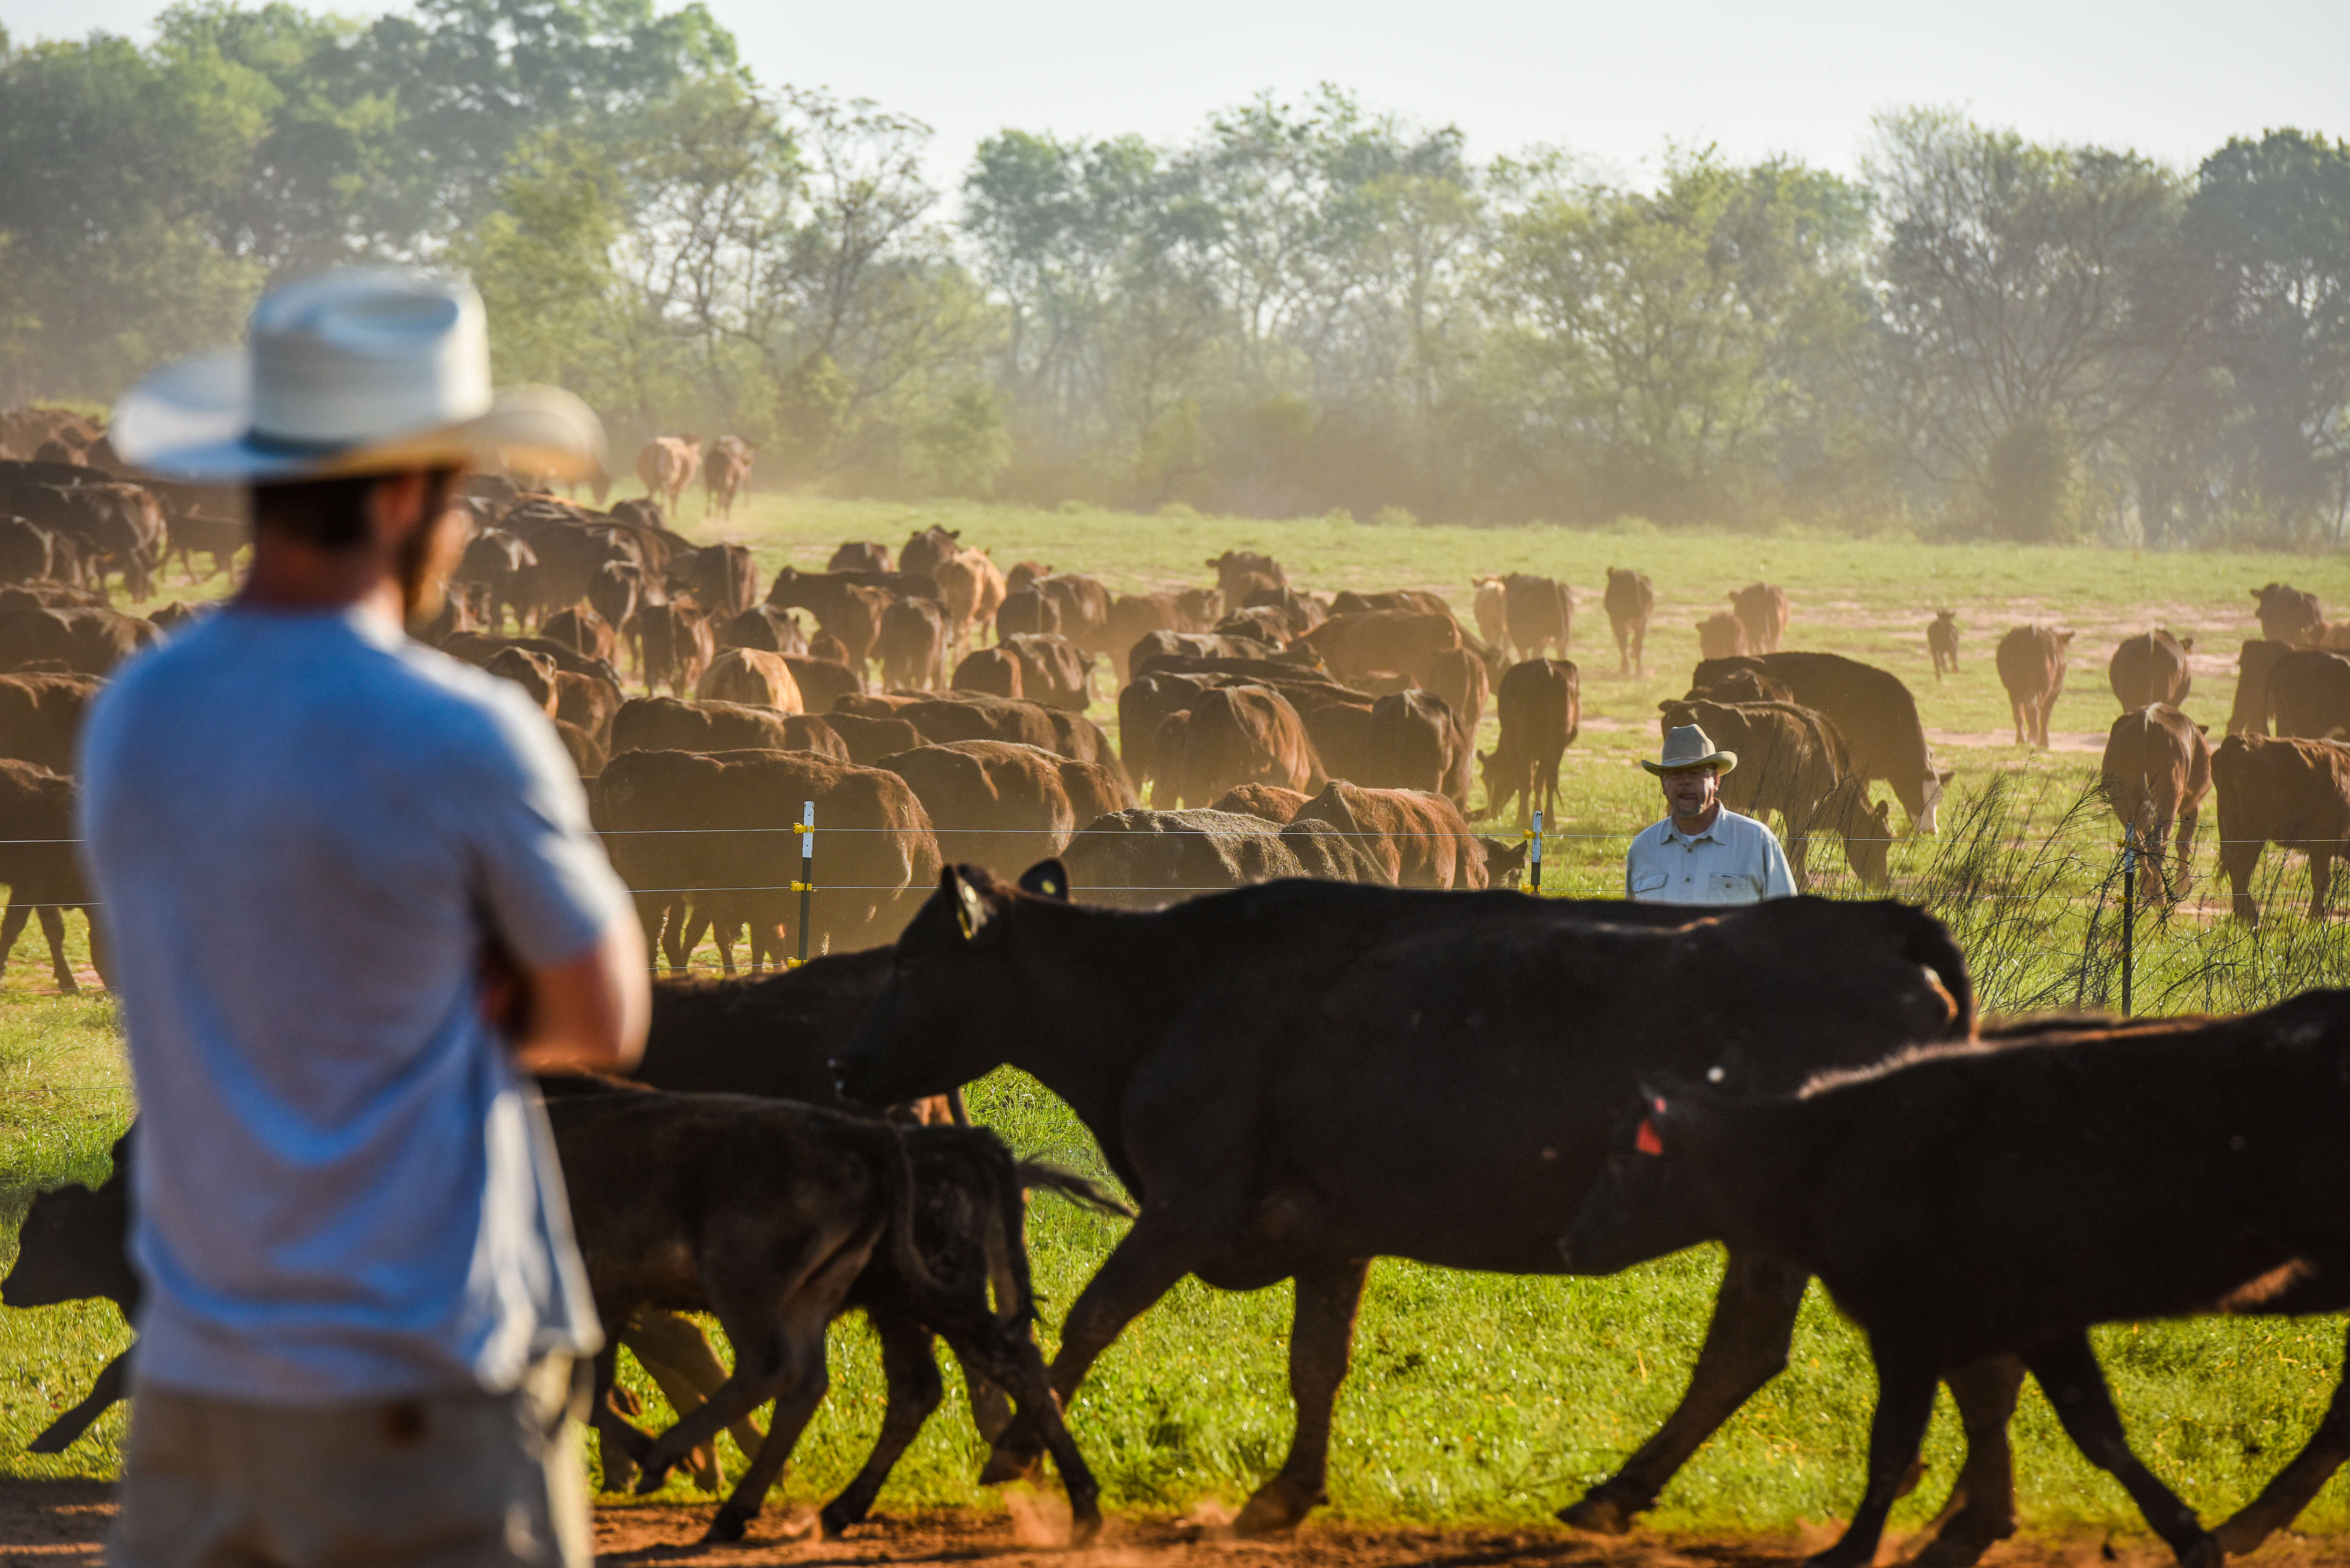 Cowboys with cattle in pasture